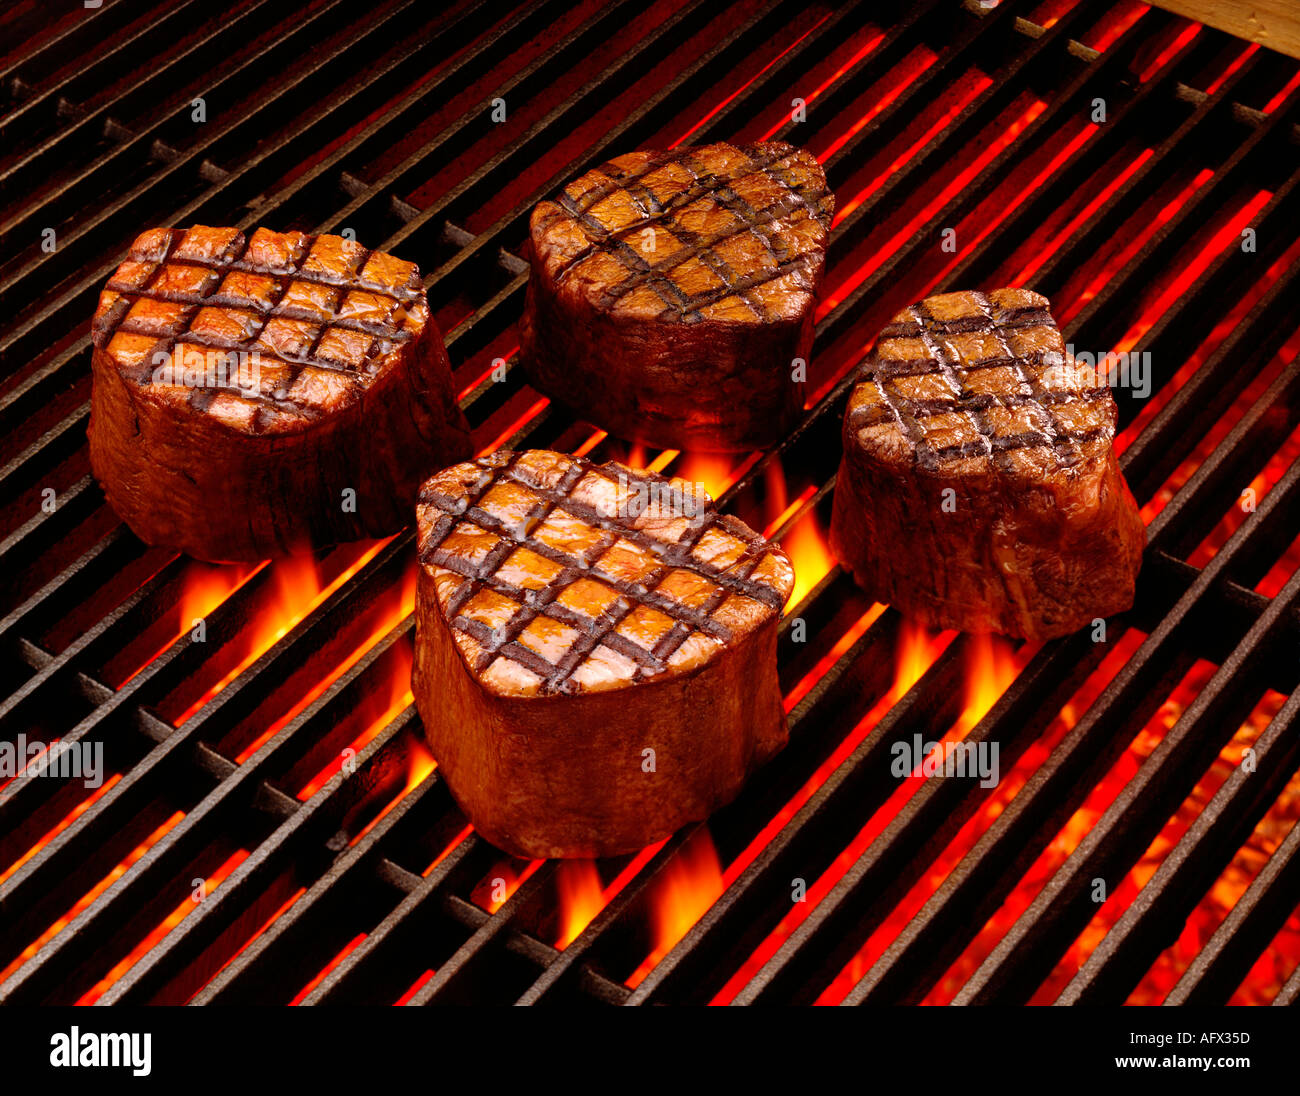 Steaks Cooking On Grill With Flames Filet Mignon Food Stock Photo